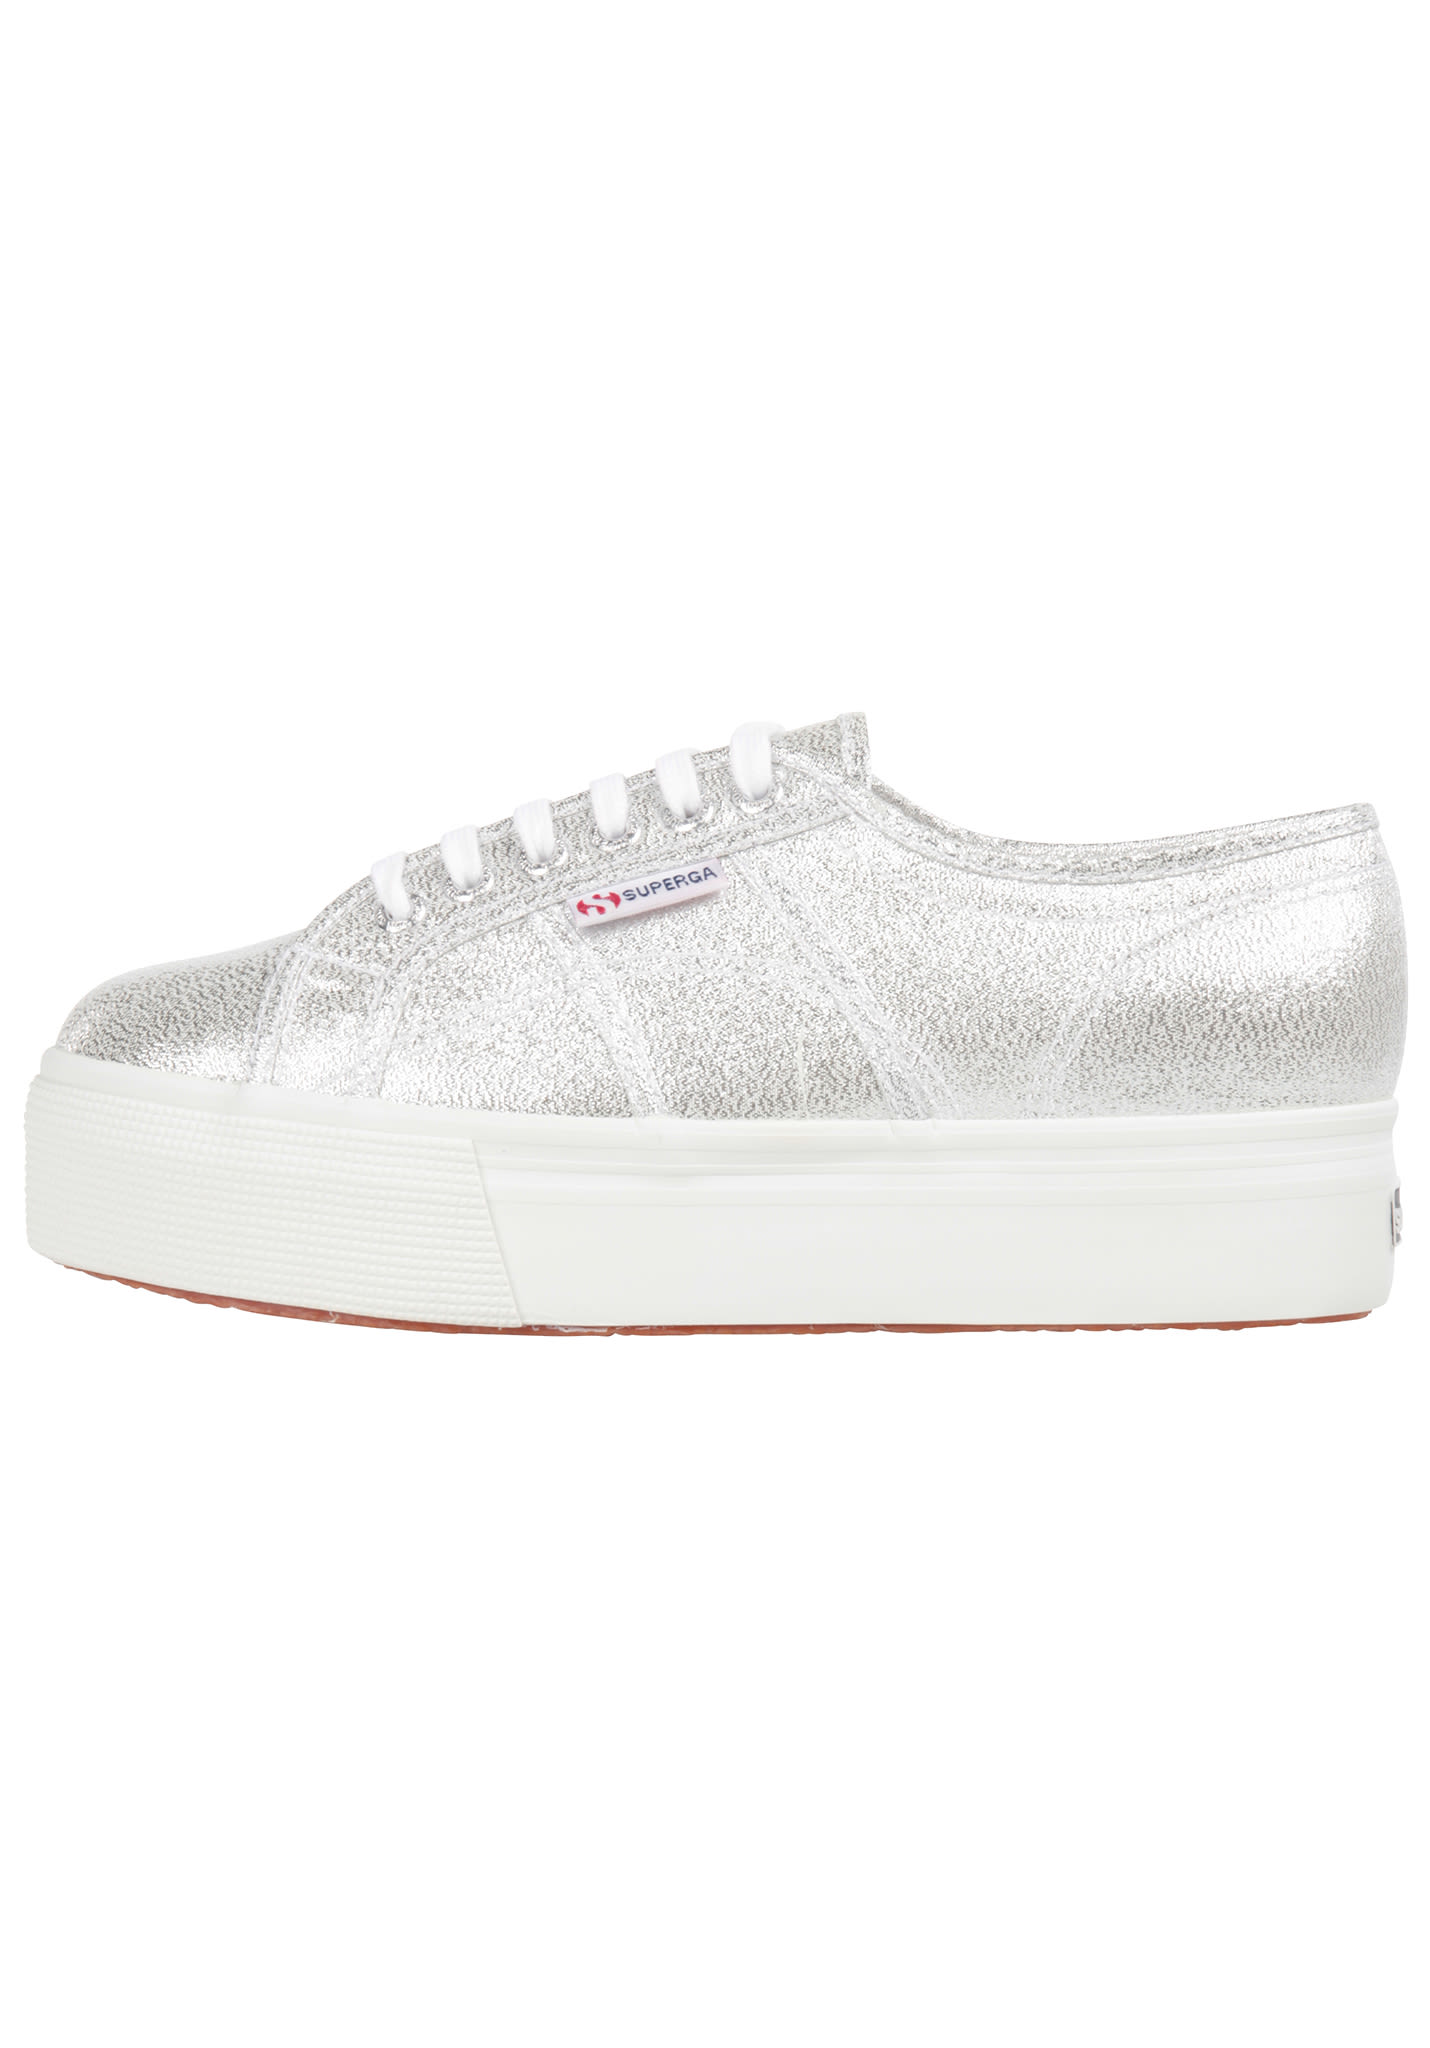 low priced 8b7b6 3f71e SUPERGA 2750 Lamew - Sneaker für Damen - Silber